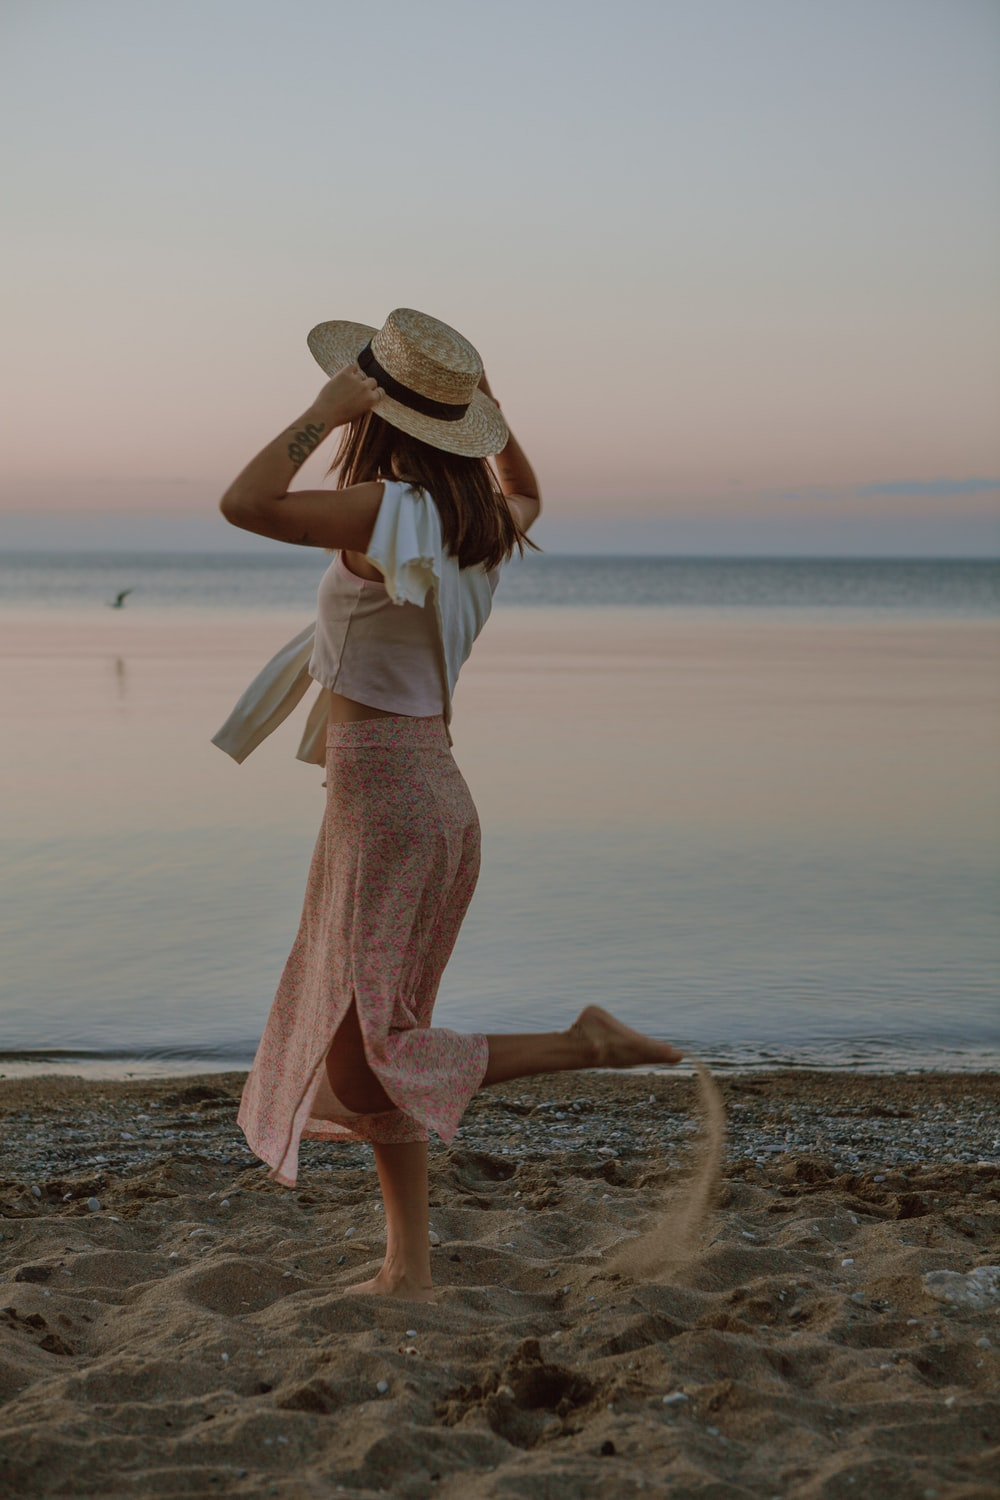 woman in white dress and brown hat standing on seashore during daytime